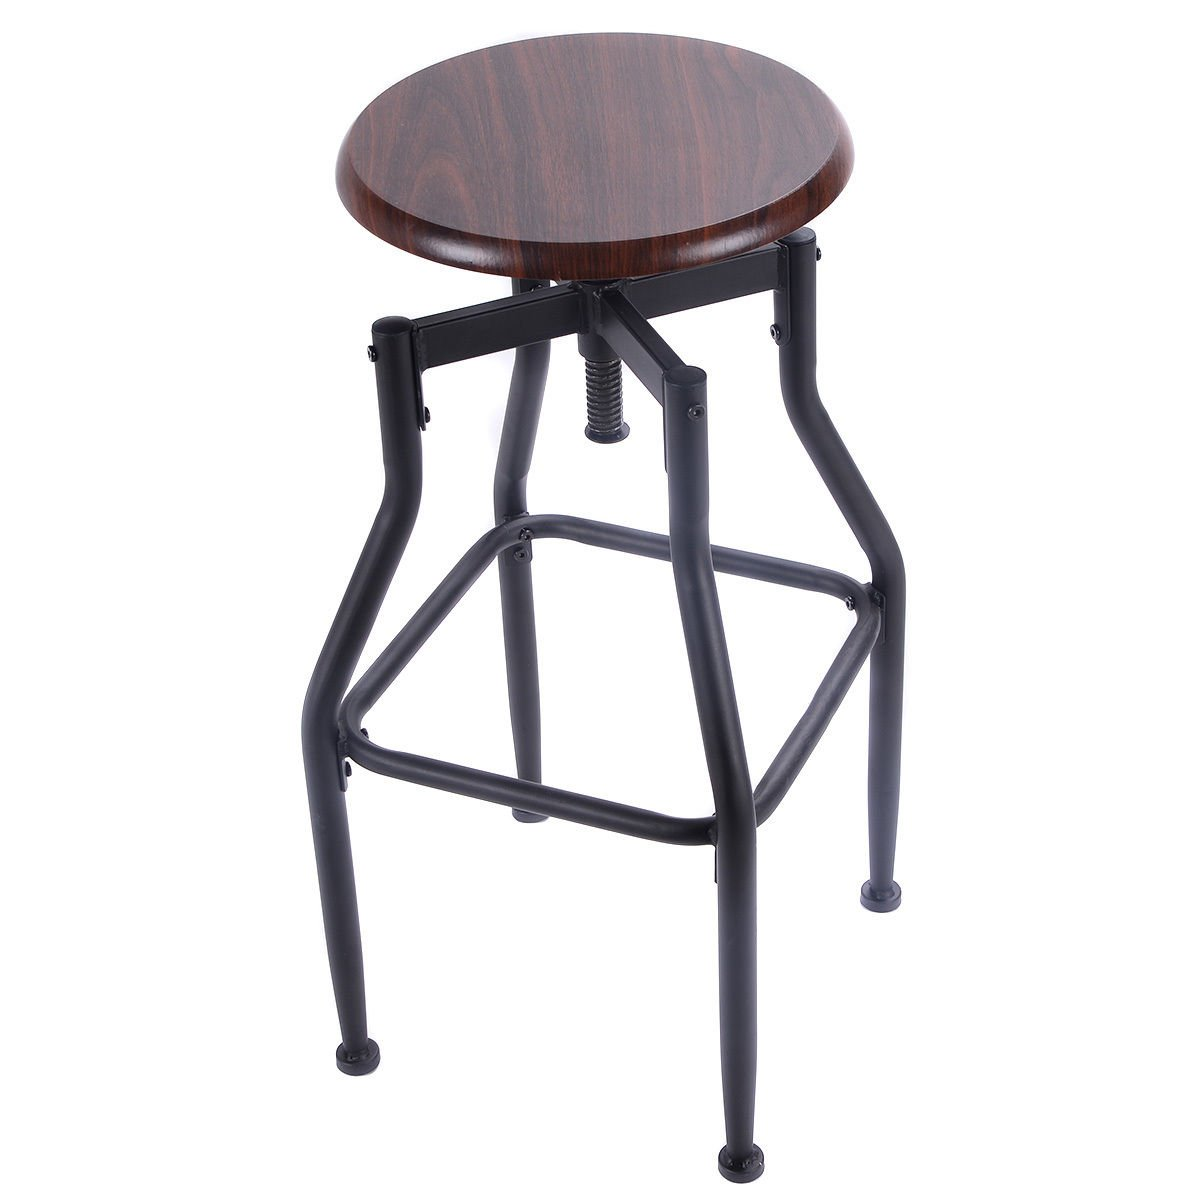 Amazon.com Costway Vintage Bar Stool Metal Design Wood Top Barstool Adjustable Height Swivel Industrial Kitchen u0026 Dining  sc 1 st  Amazon.com & Amazon.com: Costway Vintage Bar Stool Metal Design Wood Top ... islam-shia.org